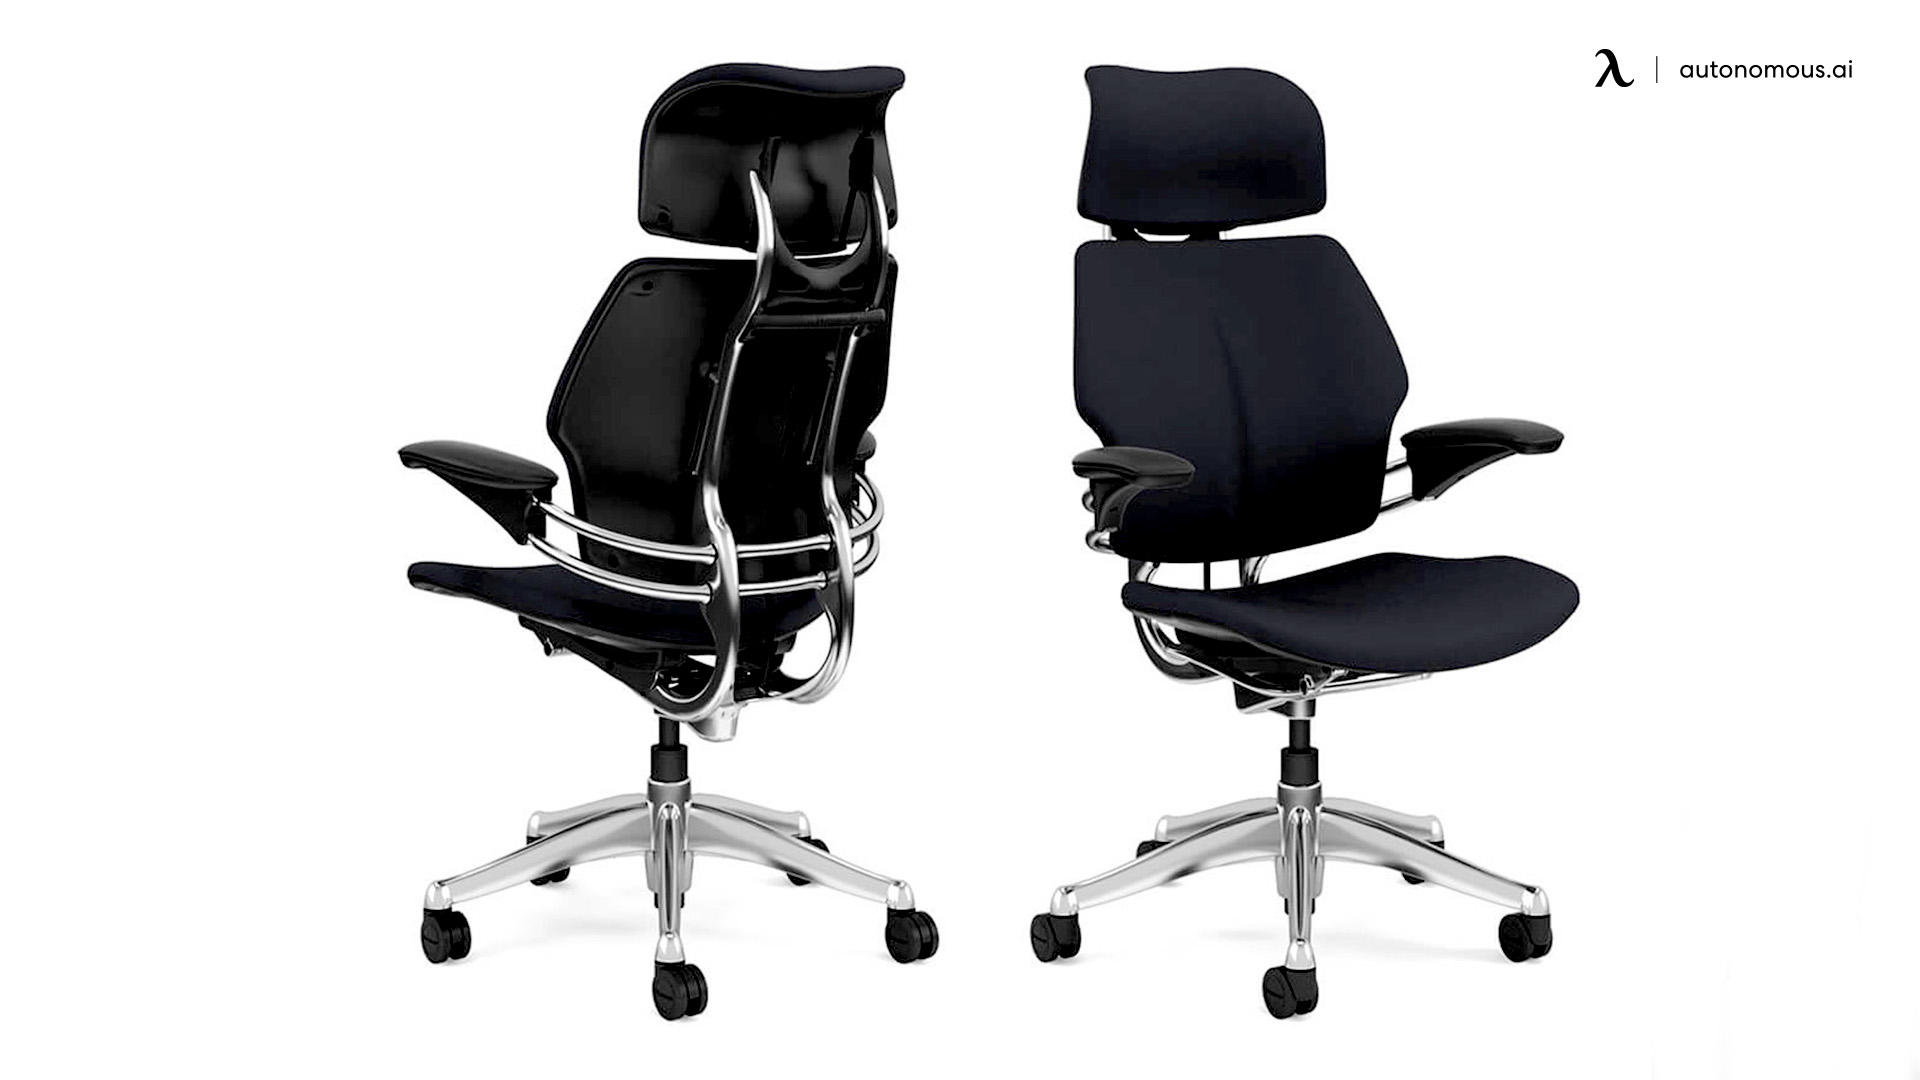 The Humanscale Freedom Office Chair